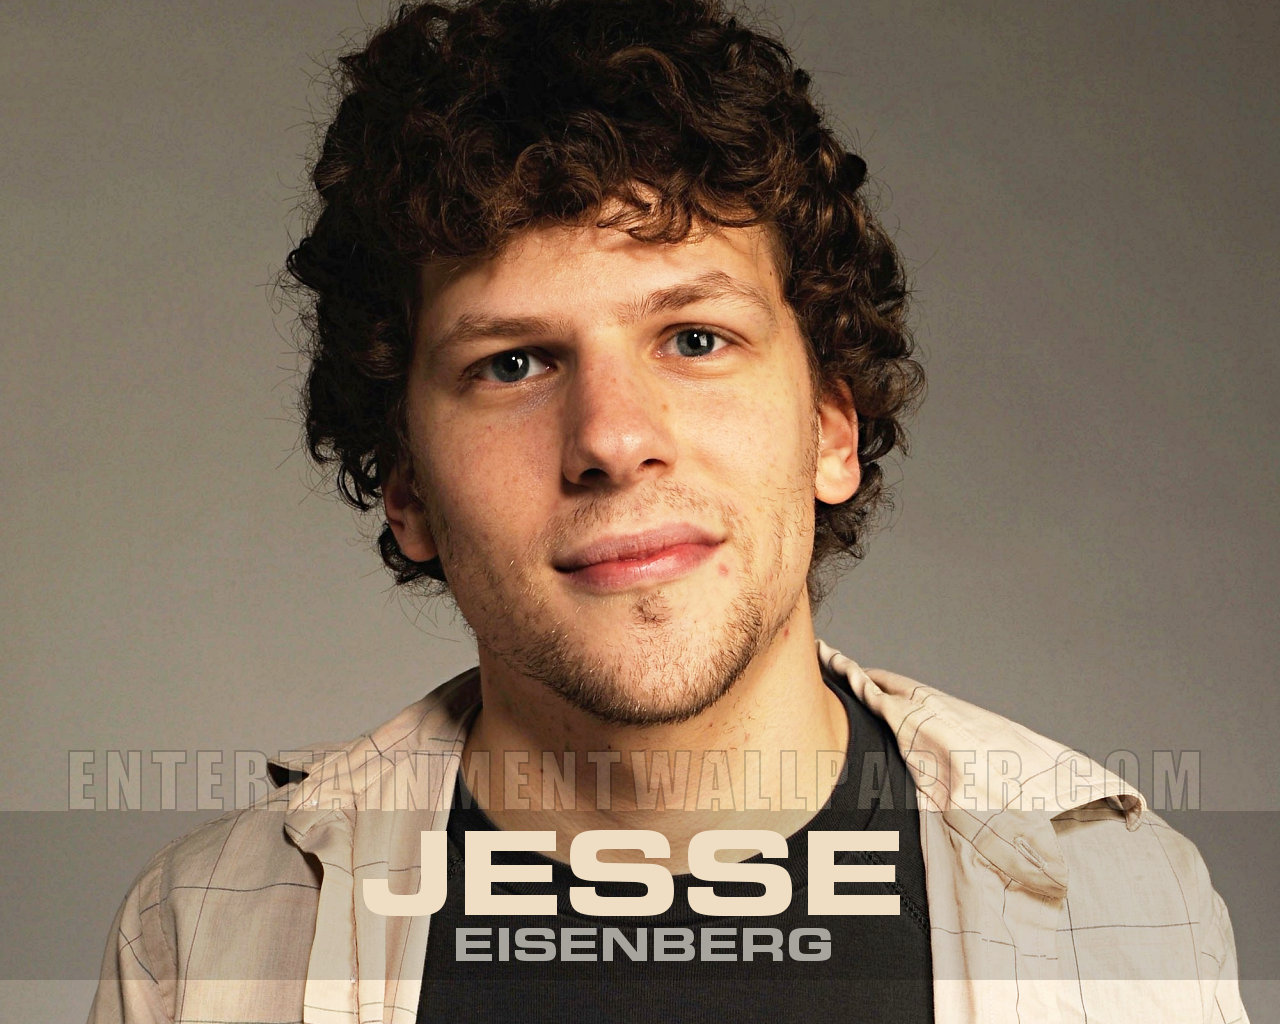 Jesse Eisenberg Wallpaper